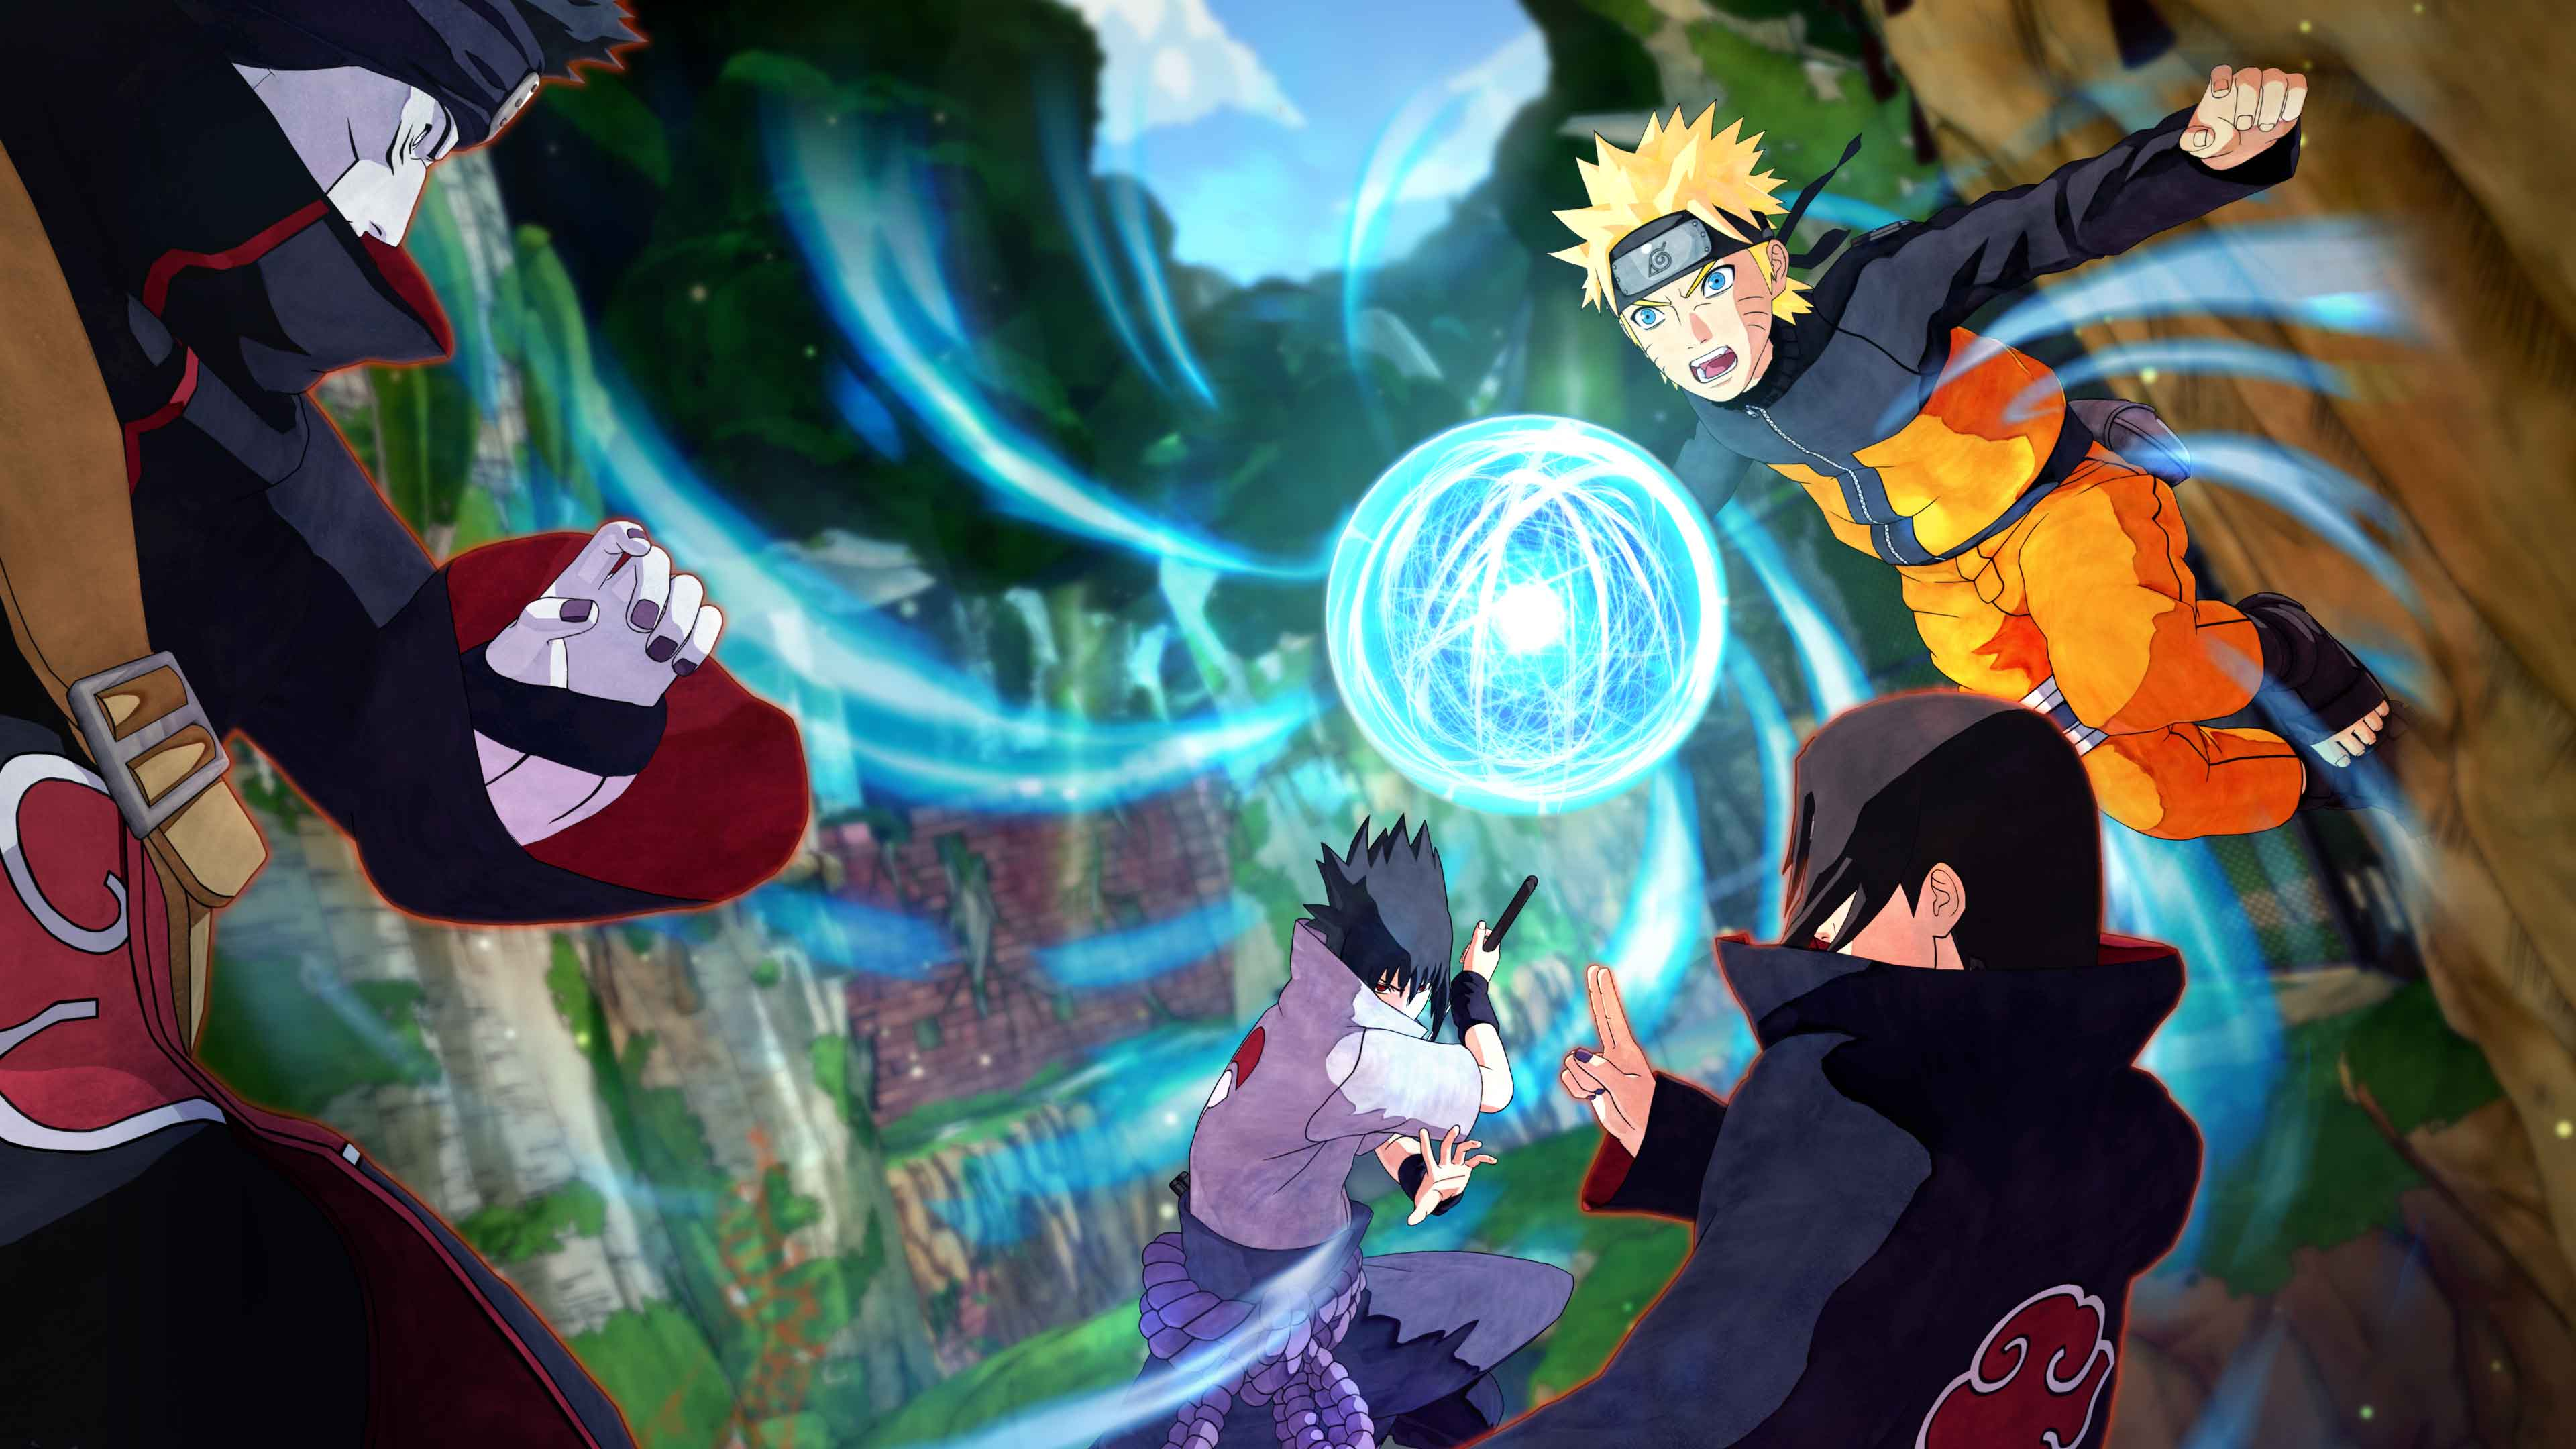 NARUTO TO BORUTO: SHINOBI STRIKER (Chinese/Korean Ver.)